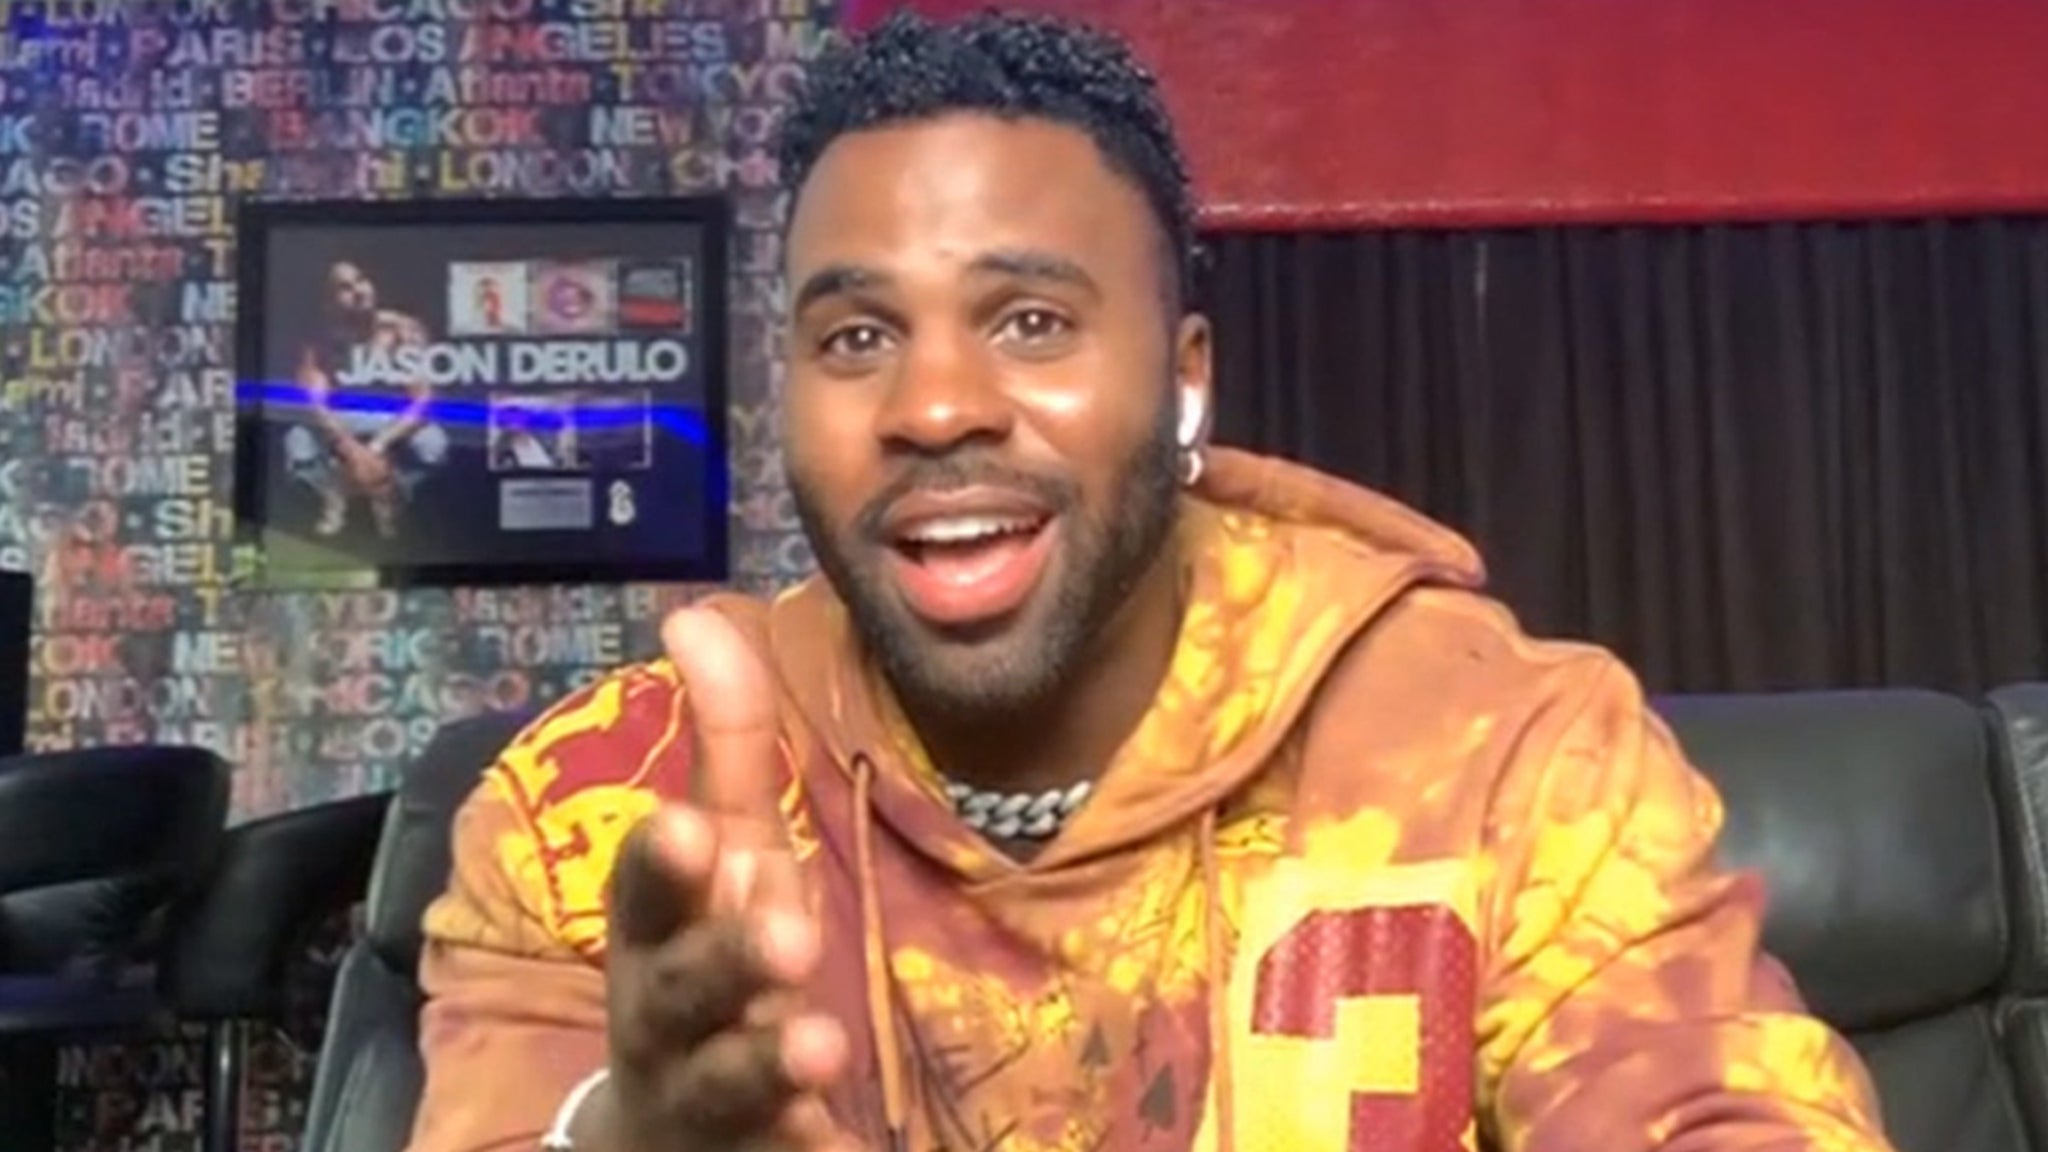 Jason Derulo Challenges The Rock To July 4 Hot Dog Eating Contest